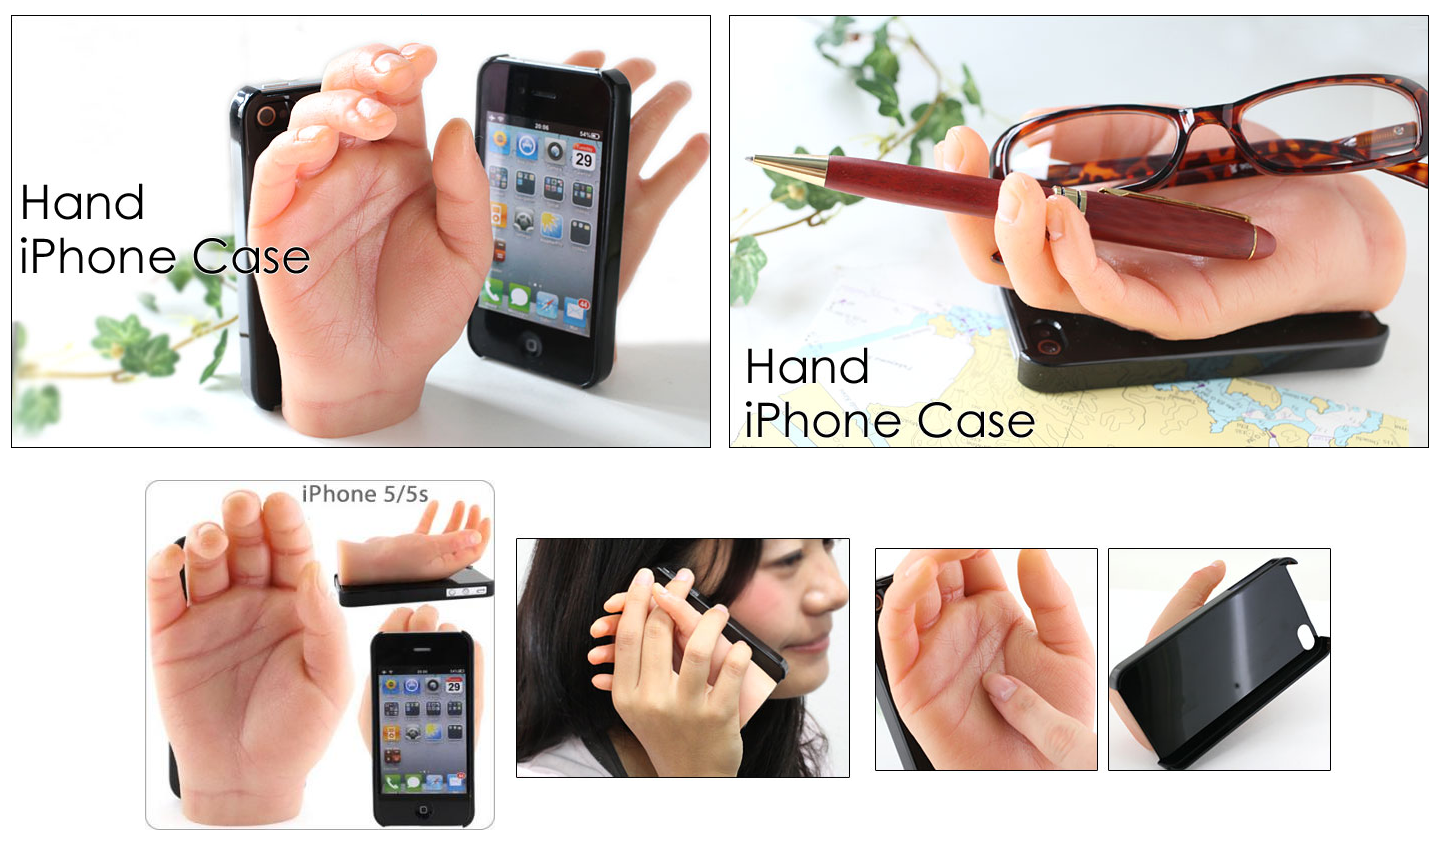 5-weird-cases-apple-iPhone-5s-5-mobile